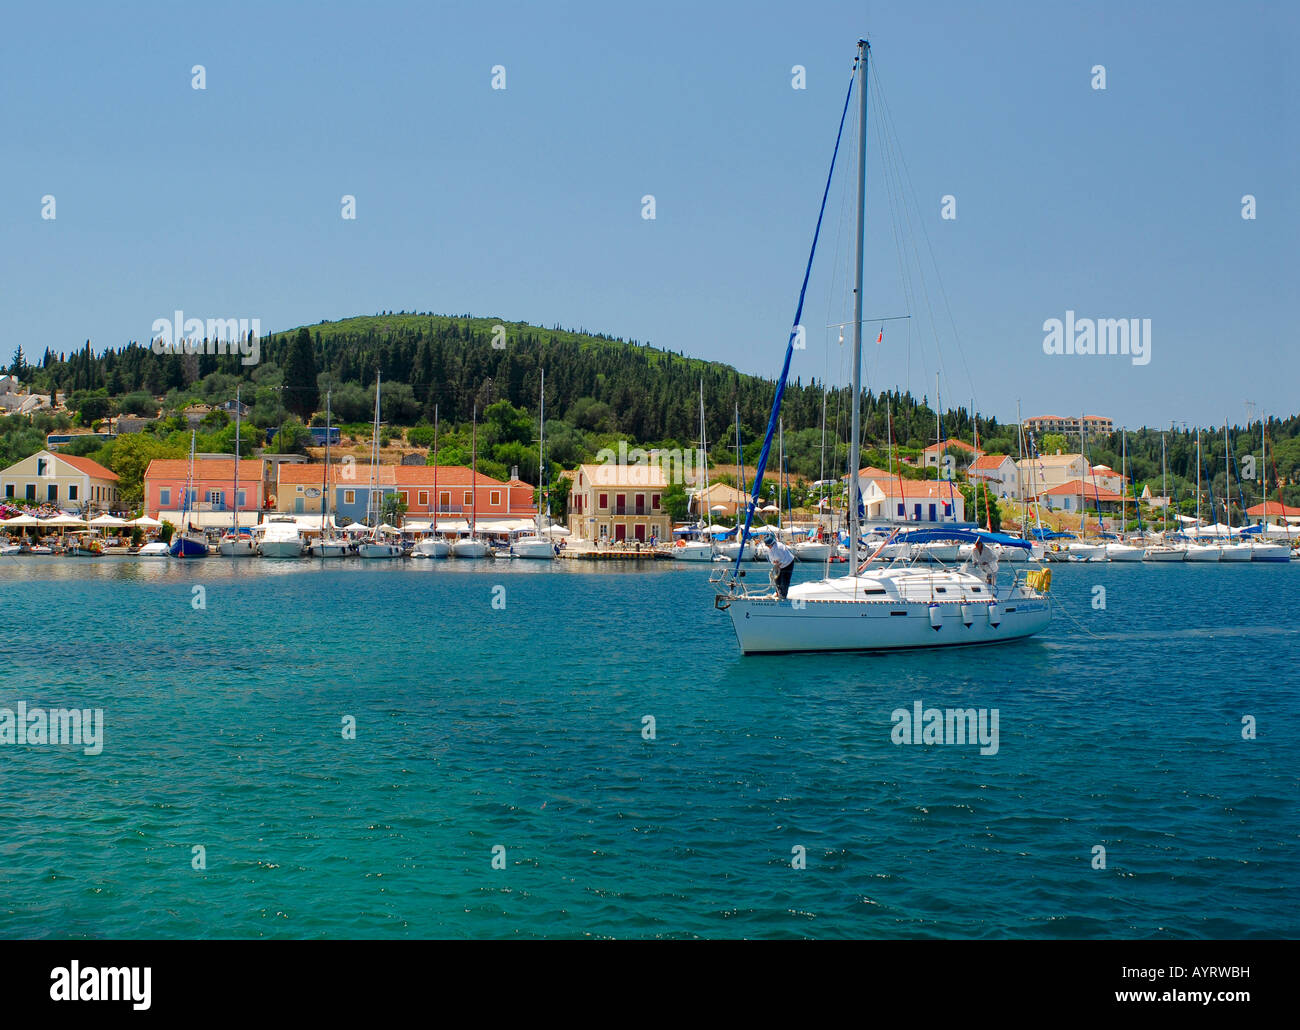 Sailboat in the harbour of Fiscardo, Kefalonia, Ionian Islands, Greece - Stock Image